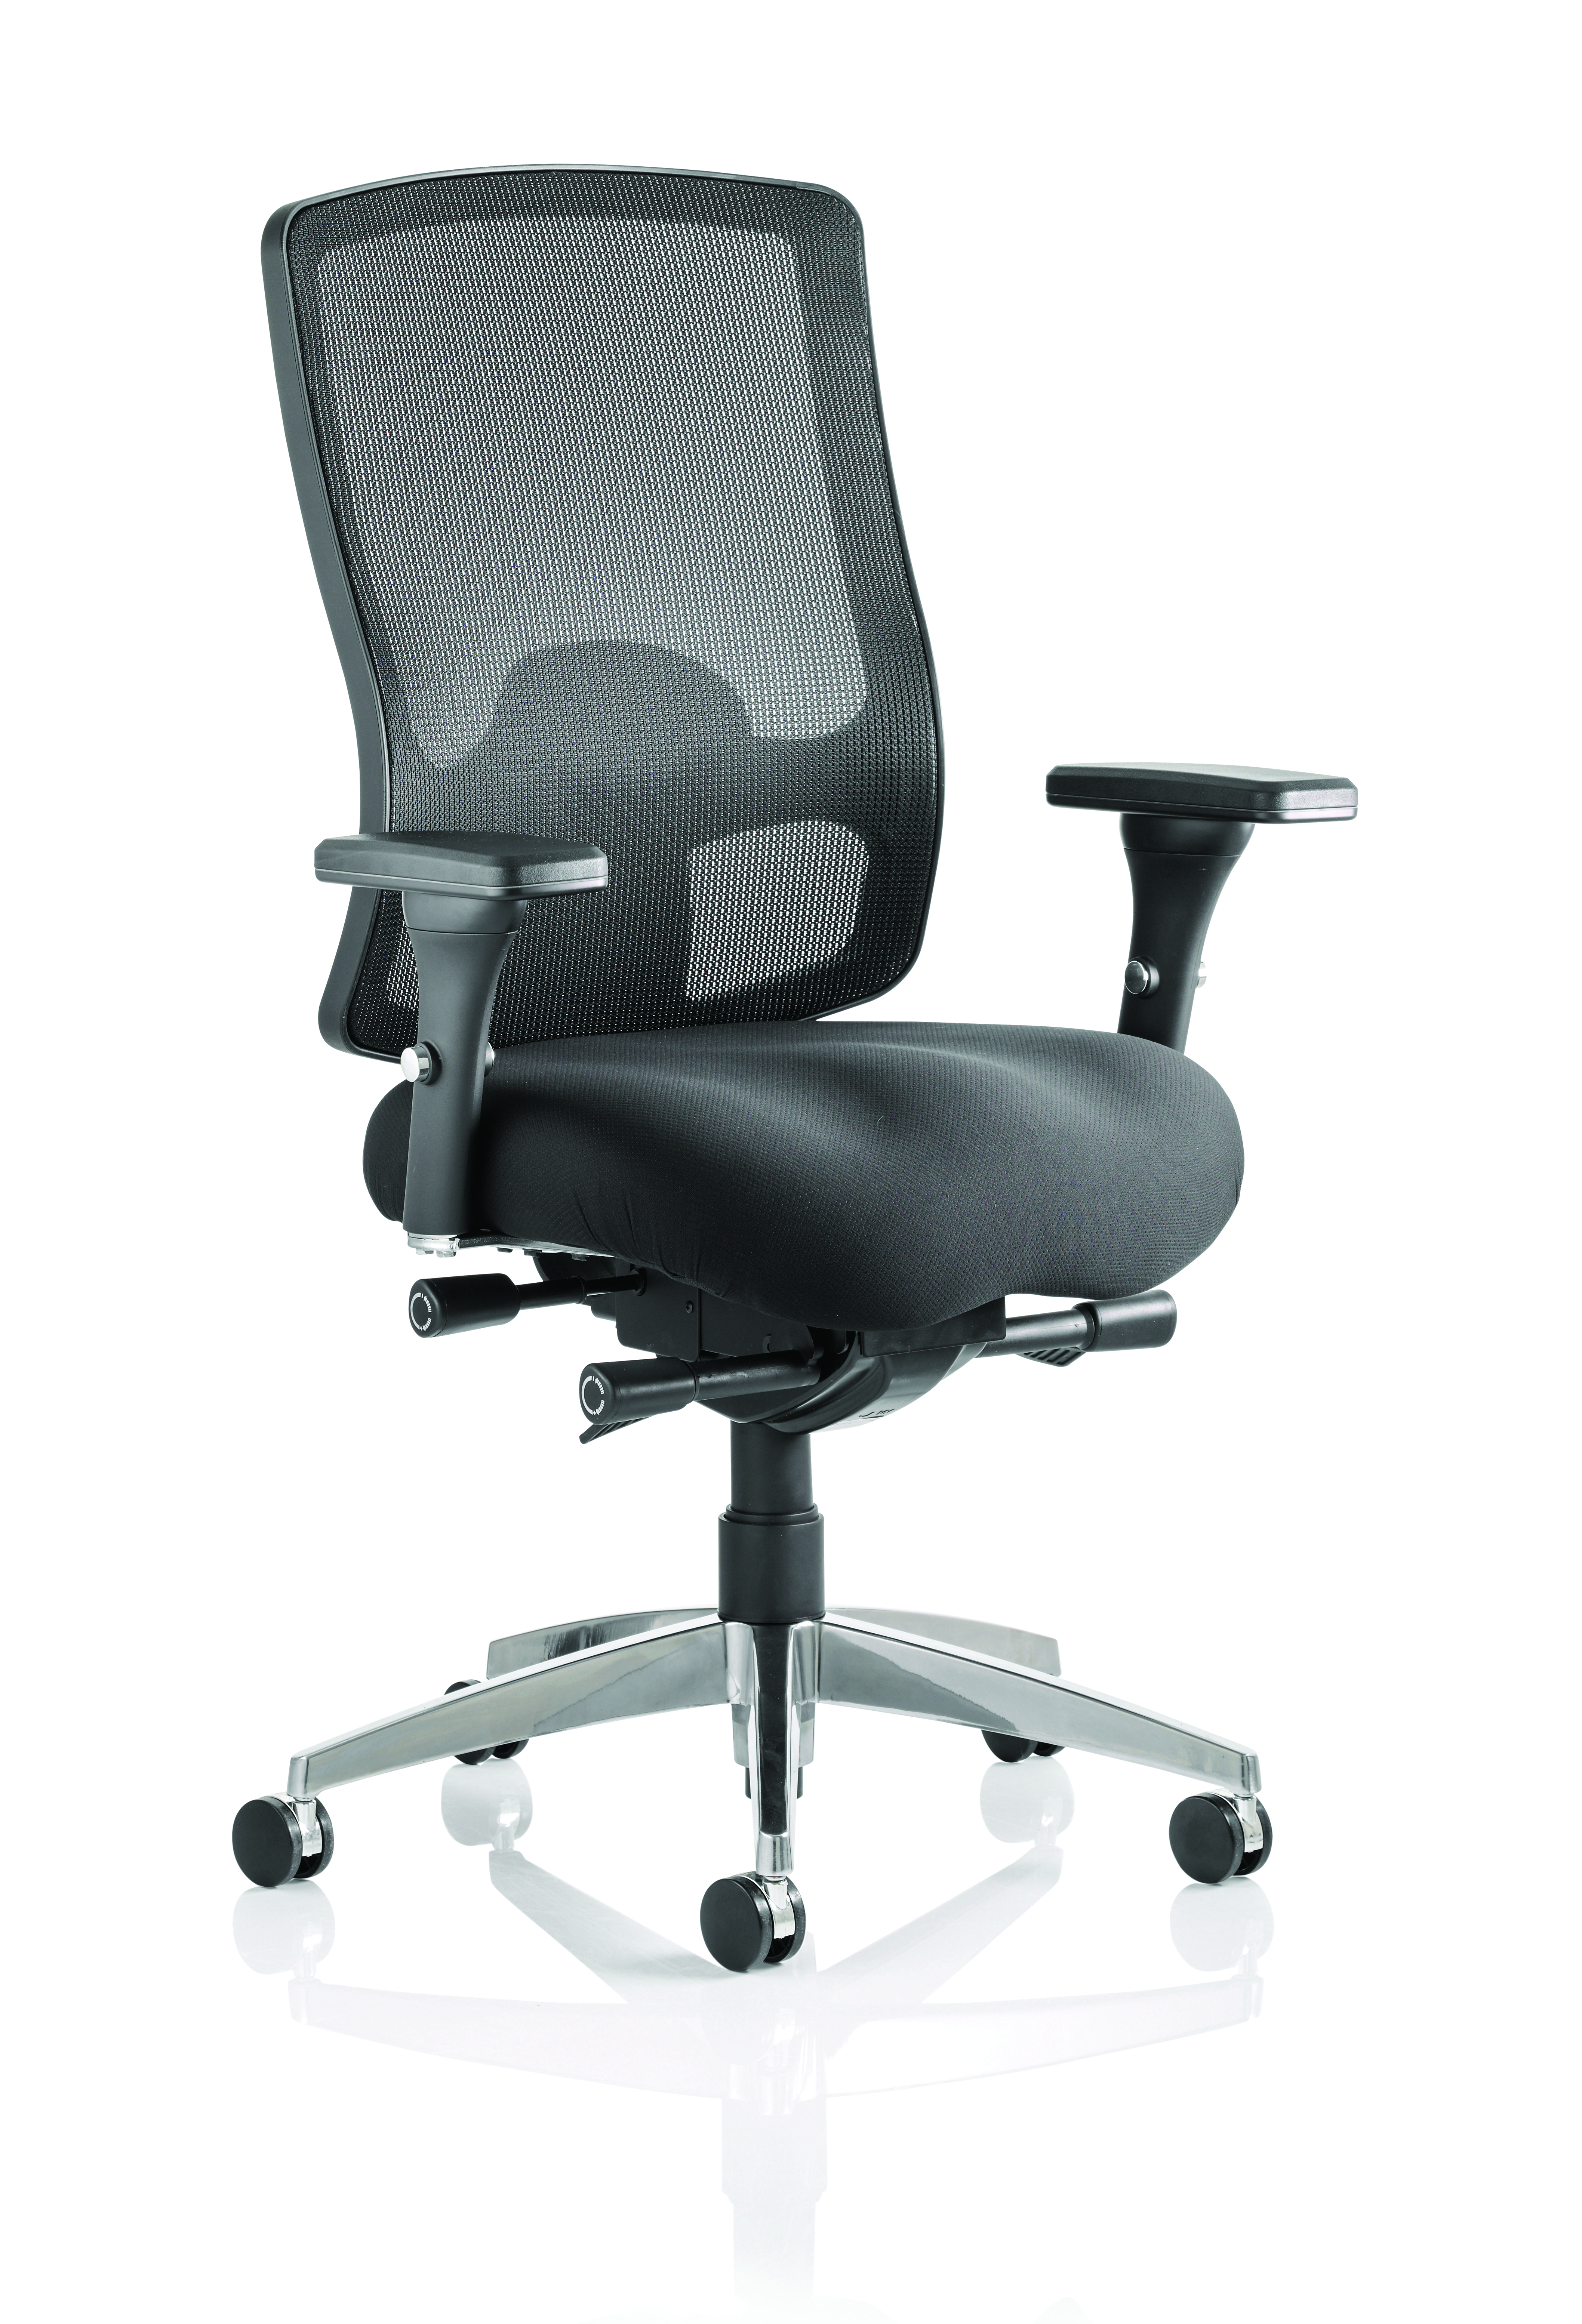 Desk Chairs Regent Chair Black Fabric Black Mesh Back With Arms OP000113